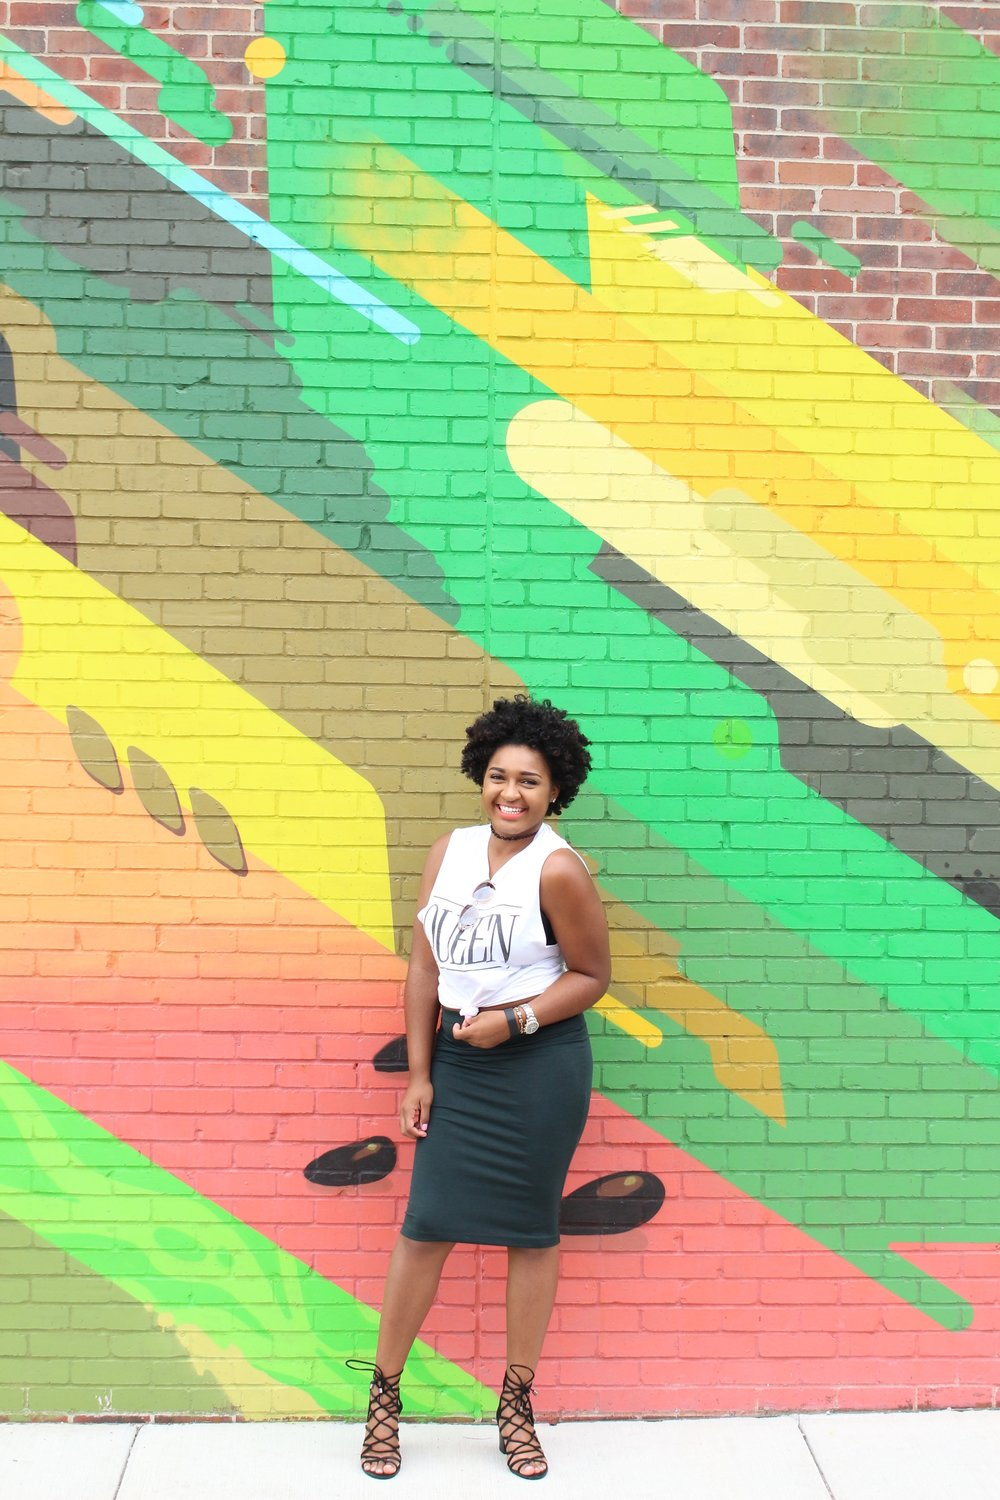 Queen Tee + Strappy Heels + Choker + Fro by jasmine cooper of jasminediane.com. Black bloggers in Kansas City with natural hair.